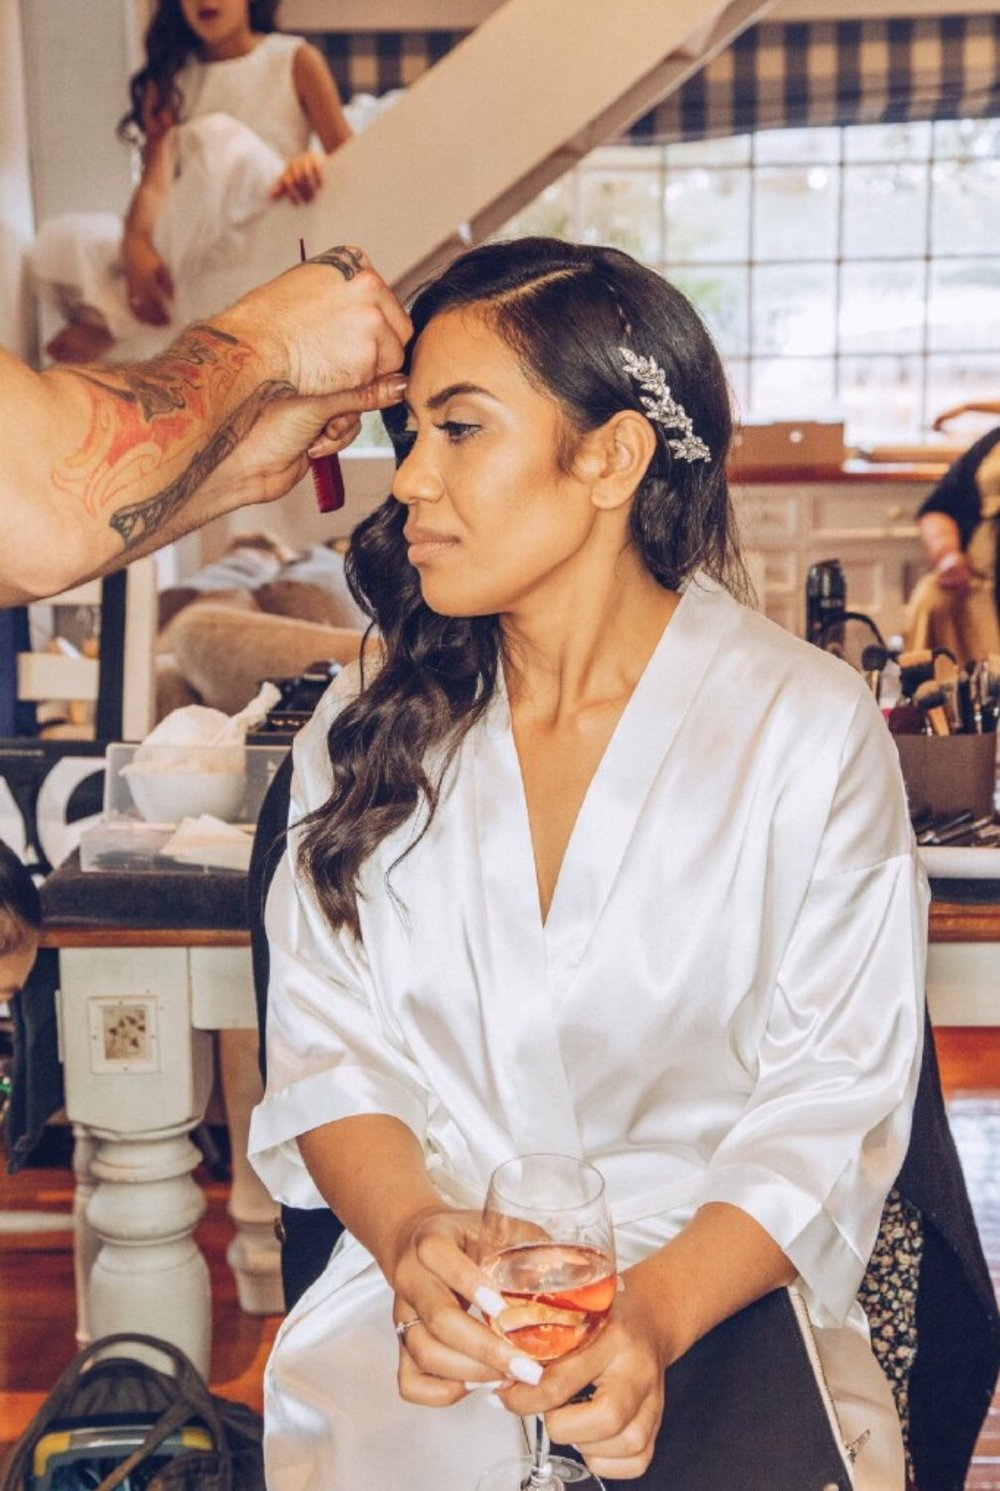 Bride $120.00 - This service is offered when booked with one or more bridesmaids. Feel picture perfect with a 60-80 minute Bridal makeover. This includes a touch-up kit including blot paper & lipstick for you and your bridesmaids.